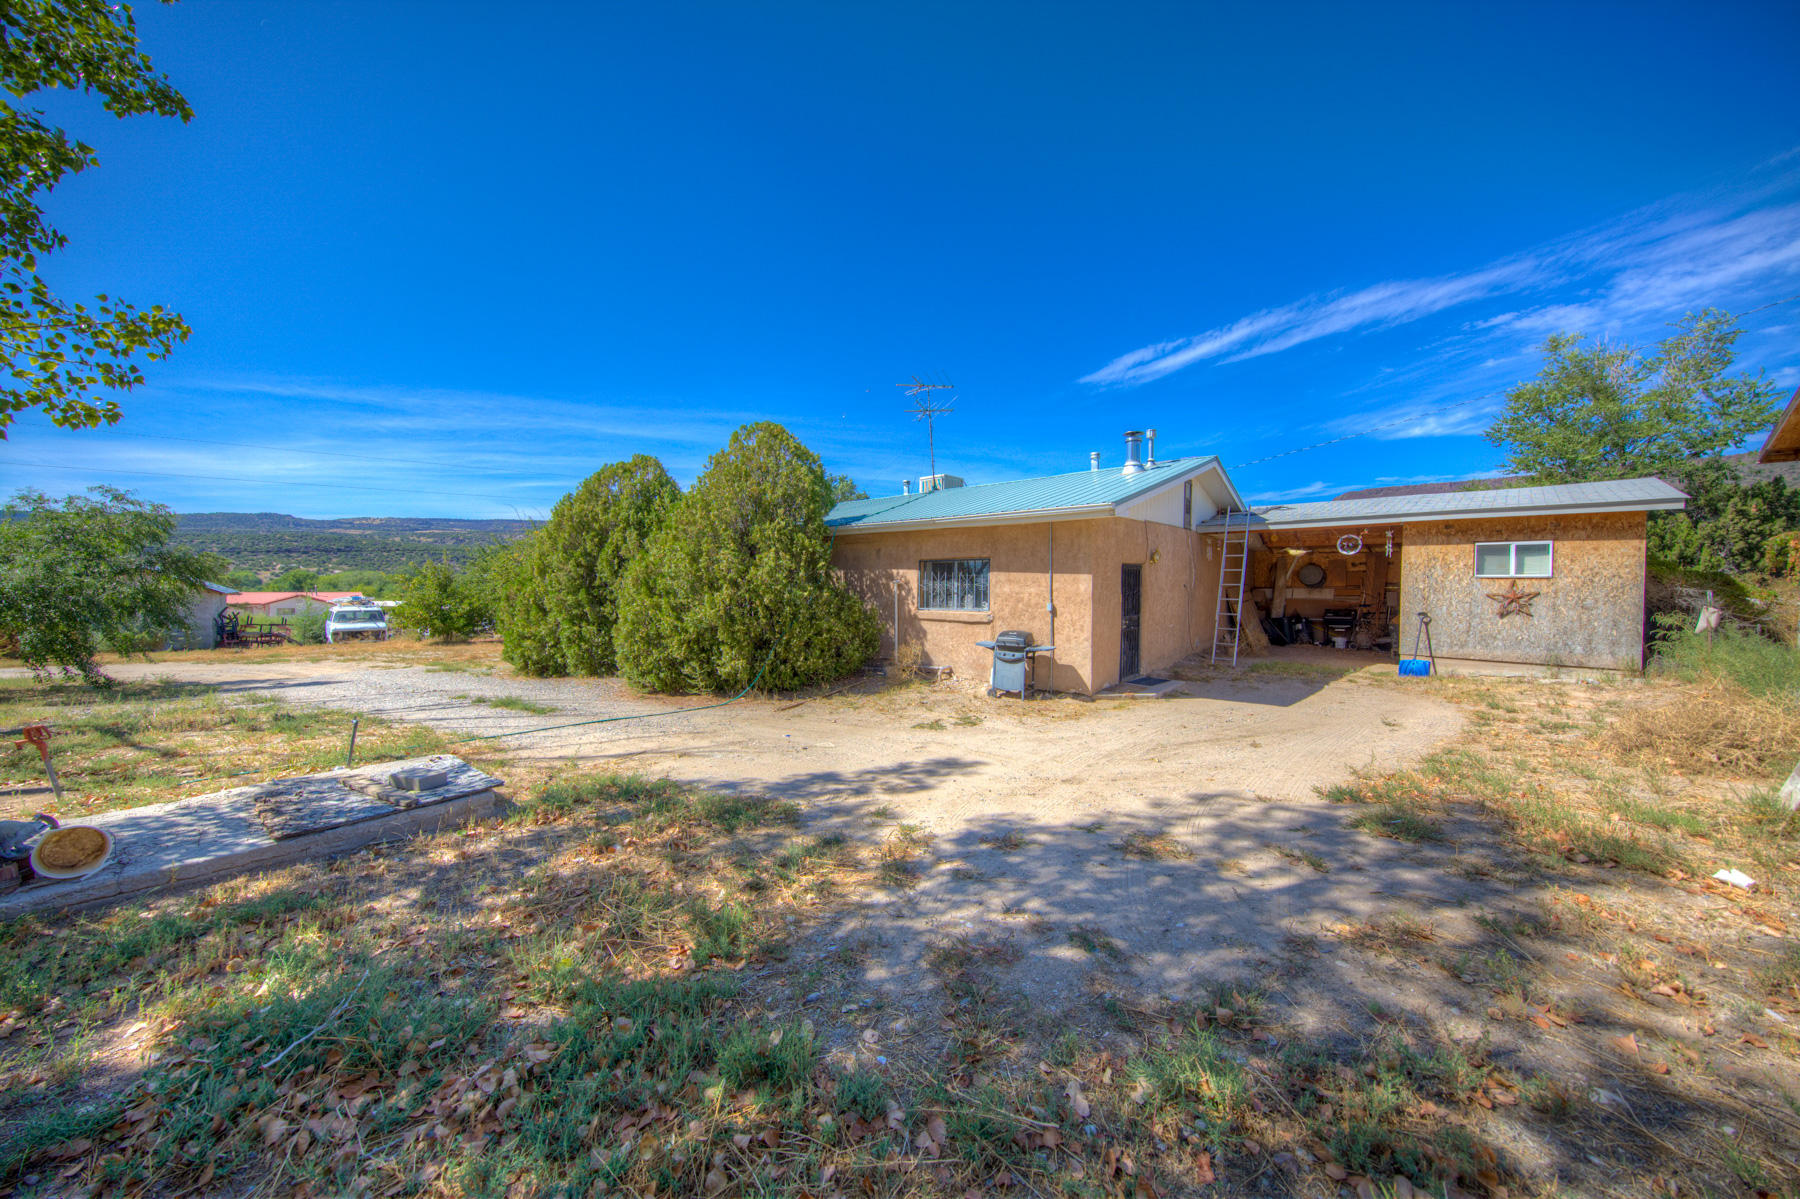 14 COUNTY ROAD 35 Property Photo - Velarde, NM real estate listing